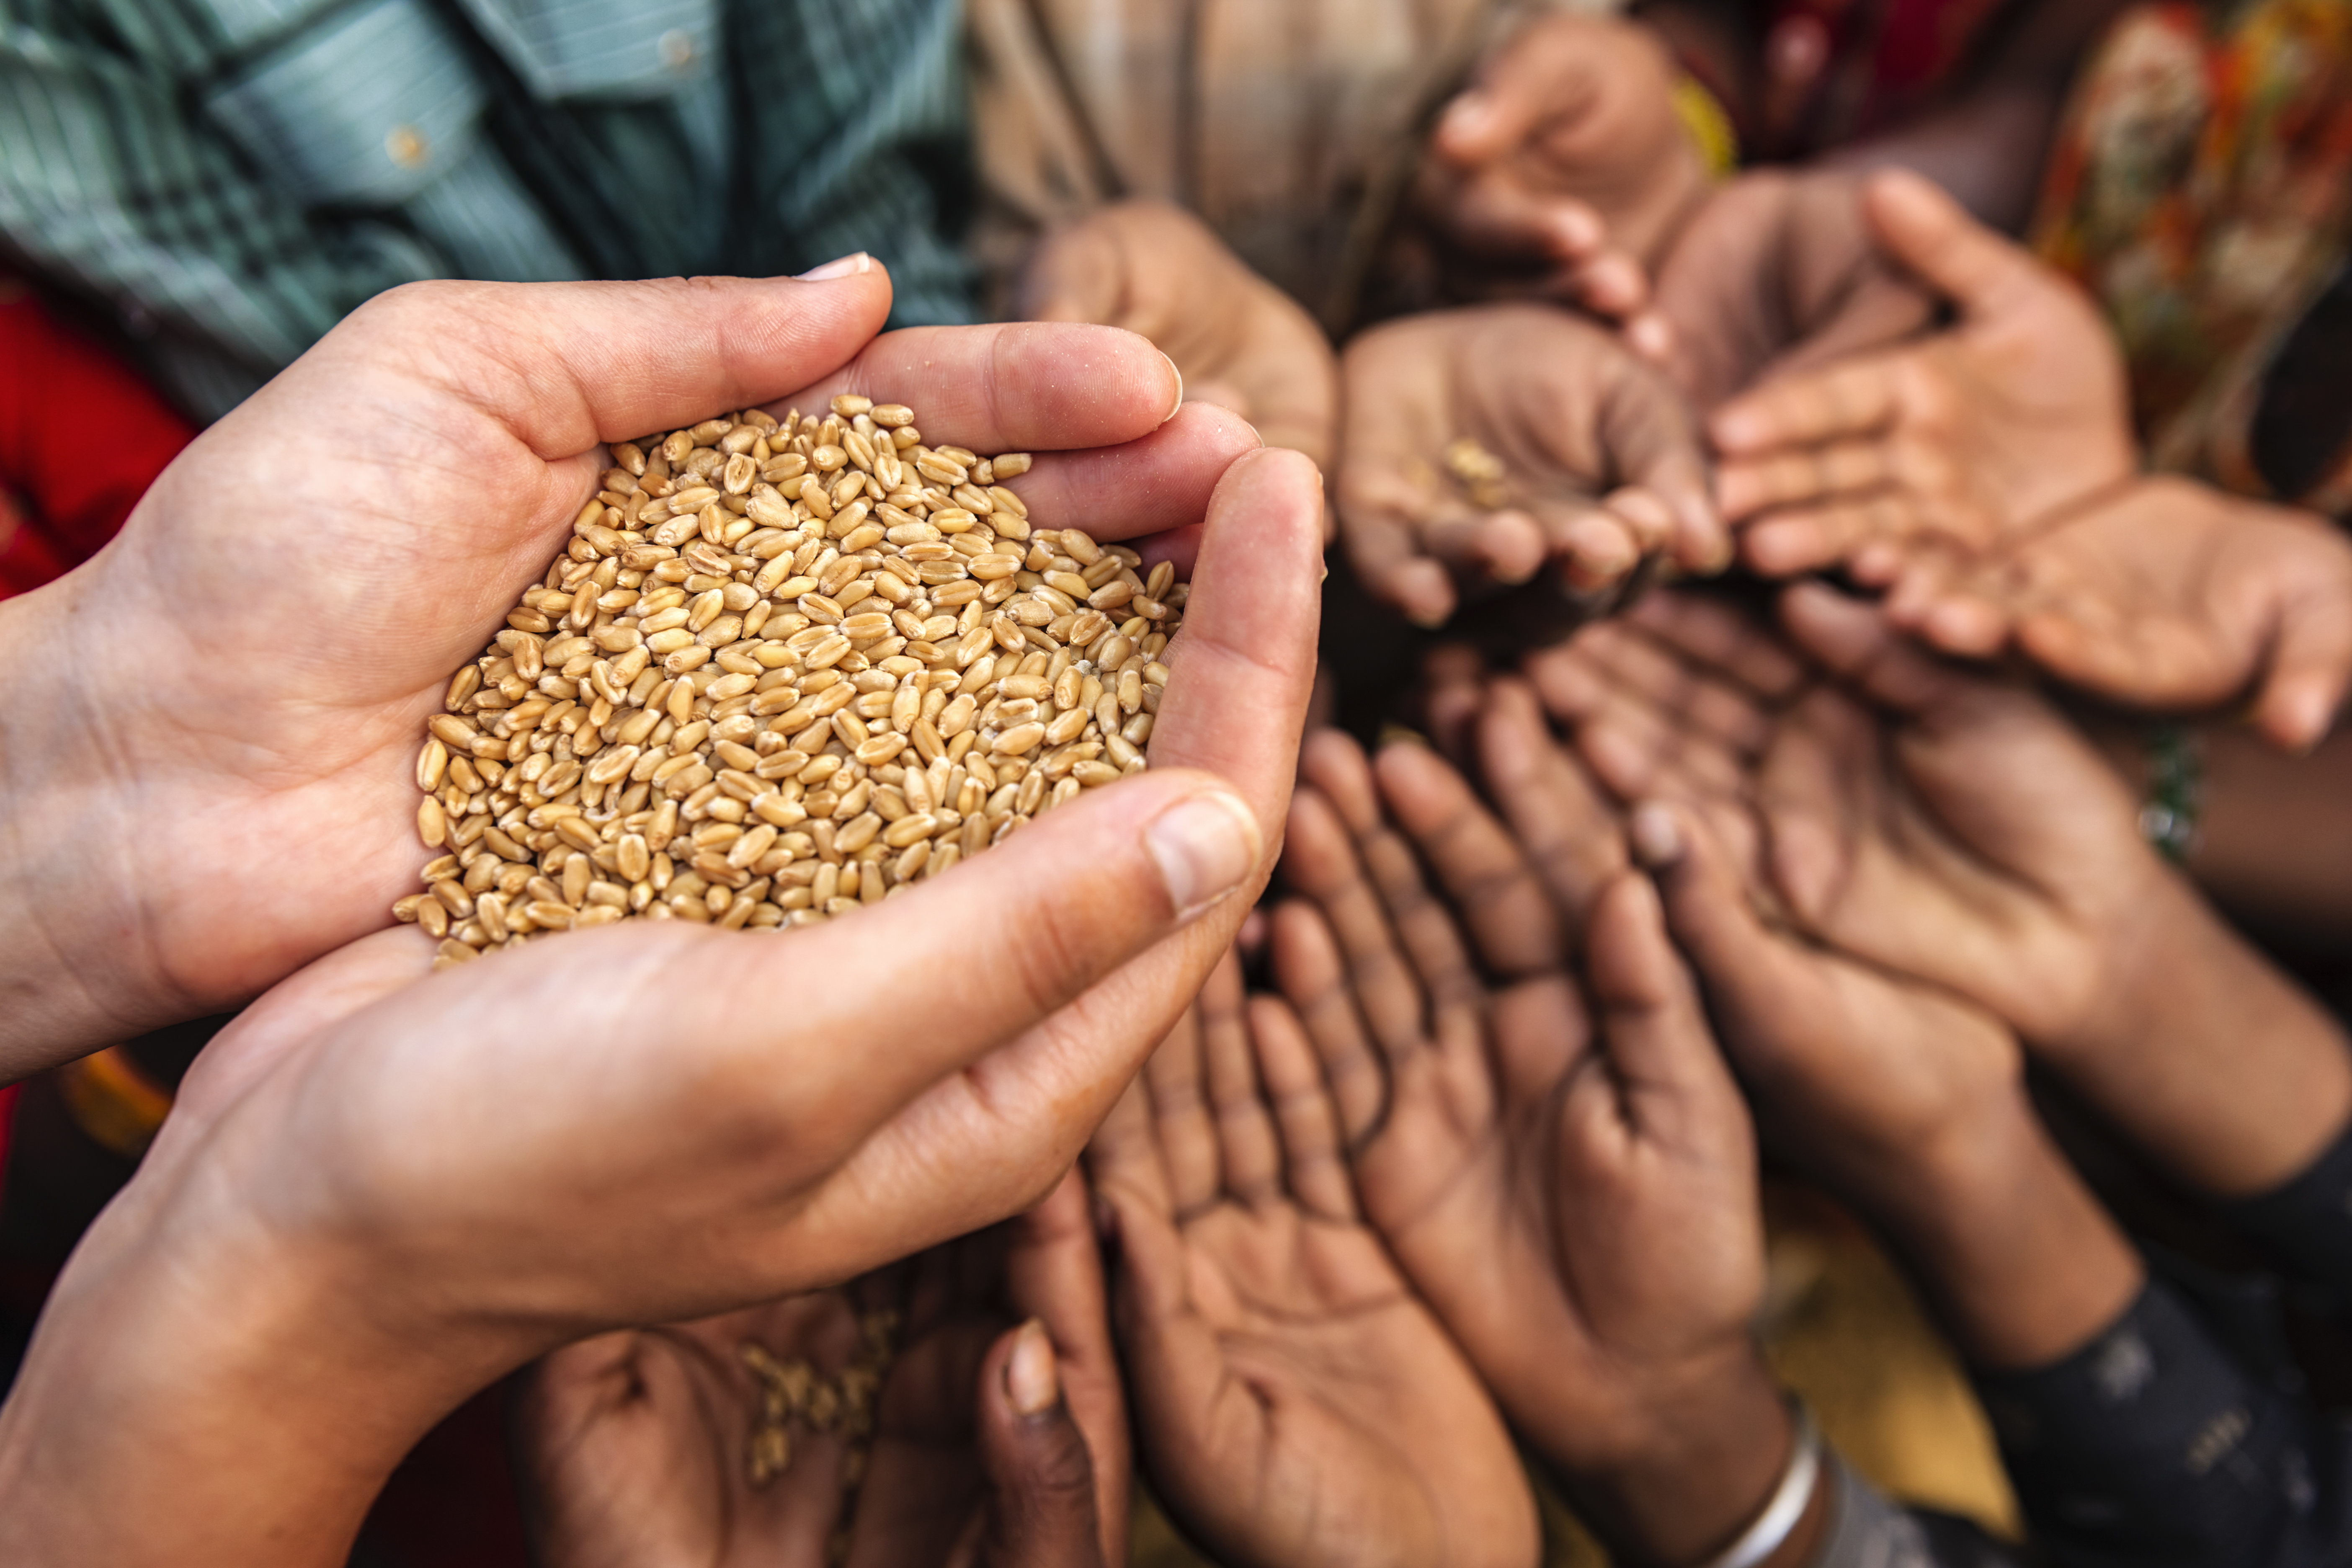 Volunteer caucasian woman giving grain to starving Indian children. Poor Indian children keeping their hands up and asking for support.